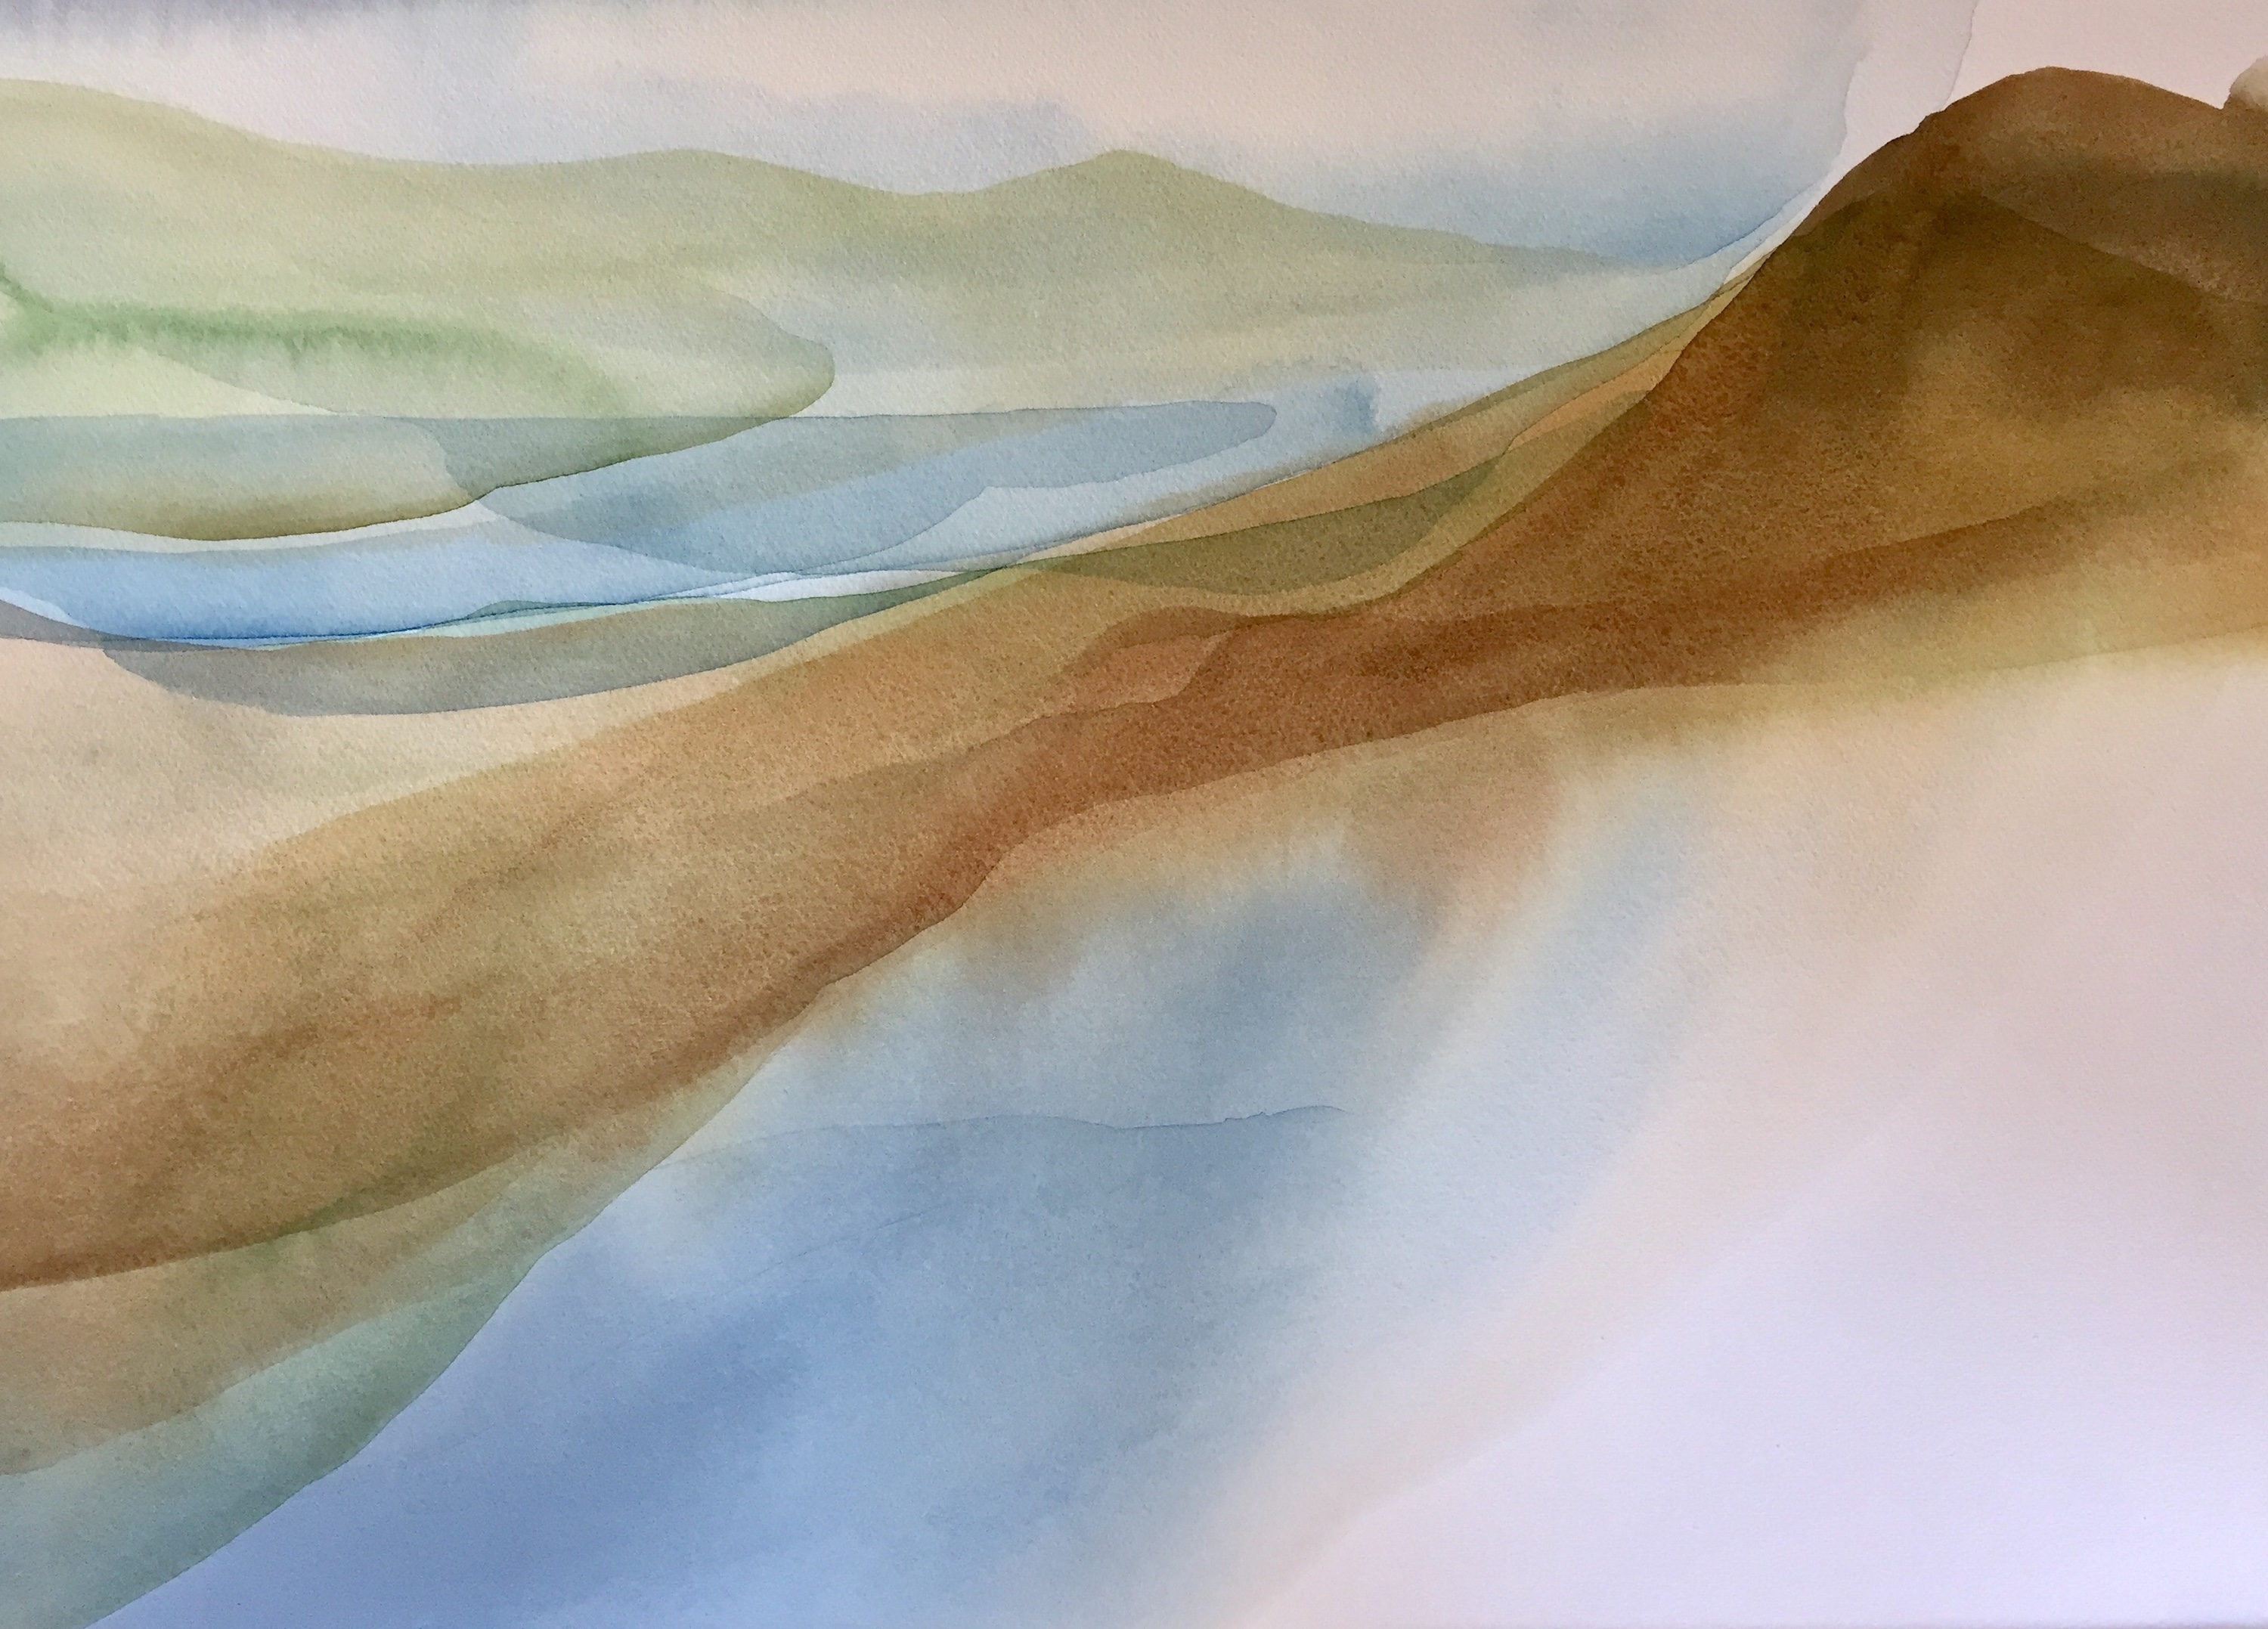 Peter Davis. Sulmaness, Watercolour on paper 2018, (70x50cm)